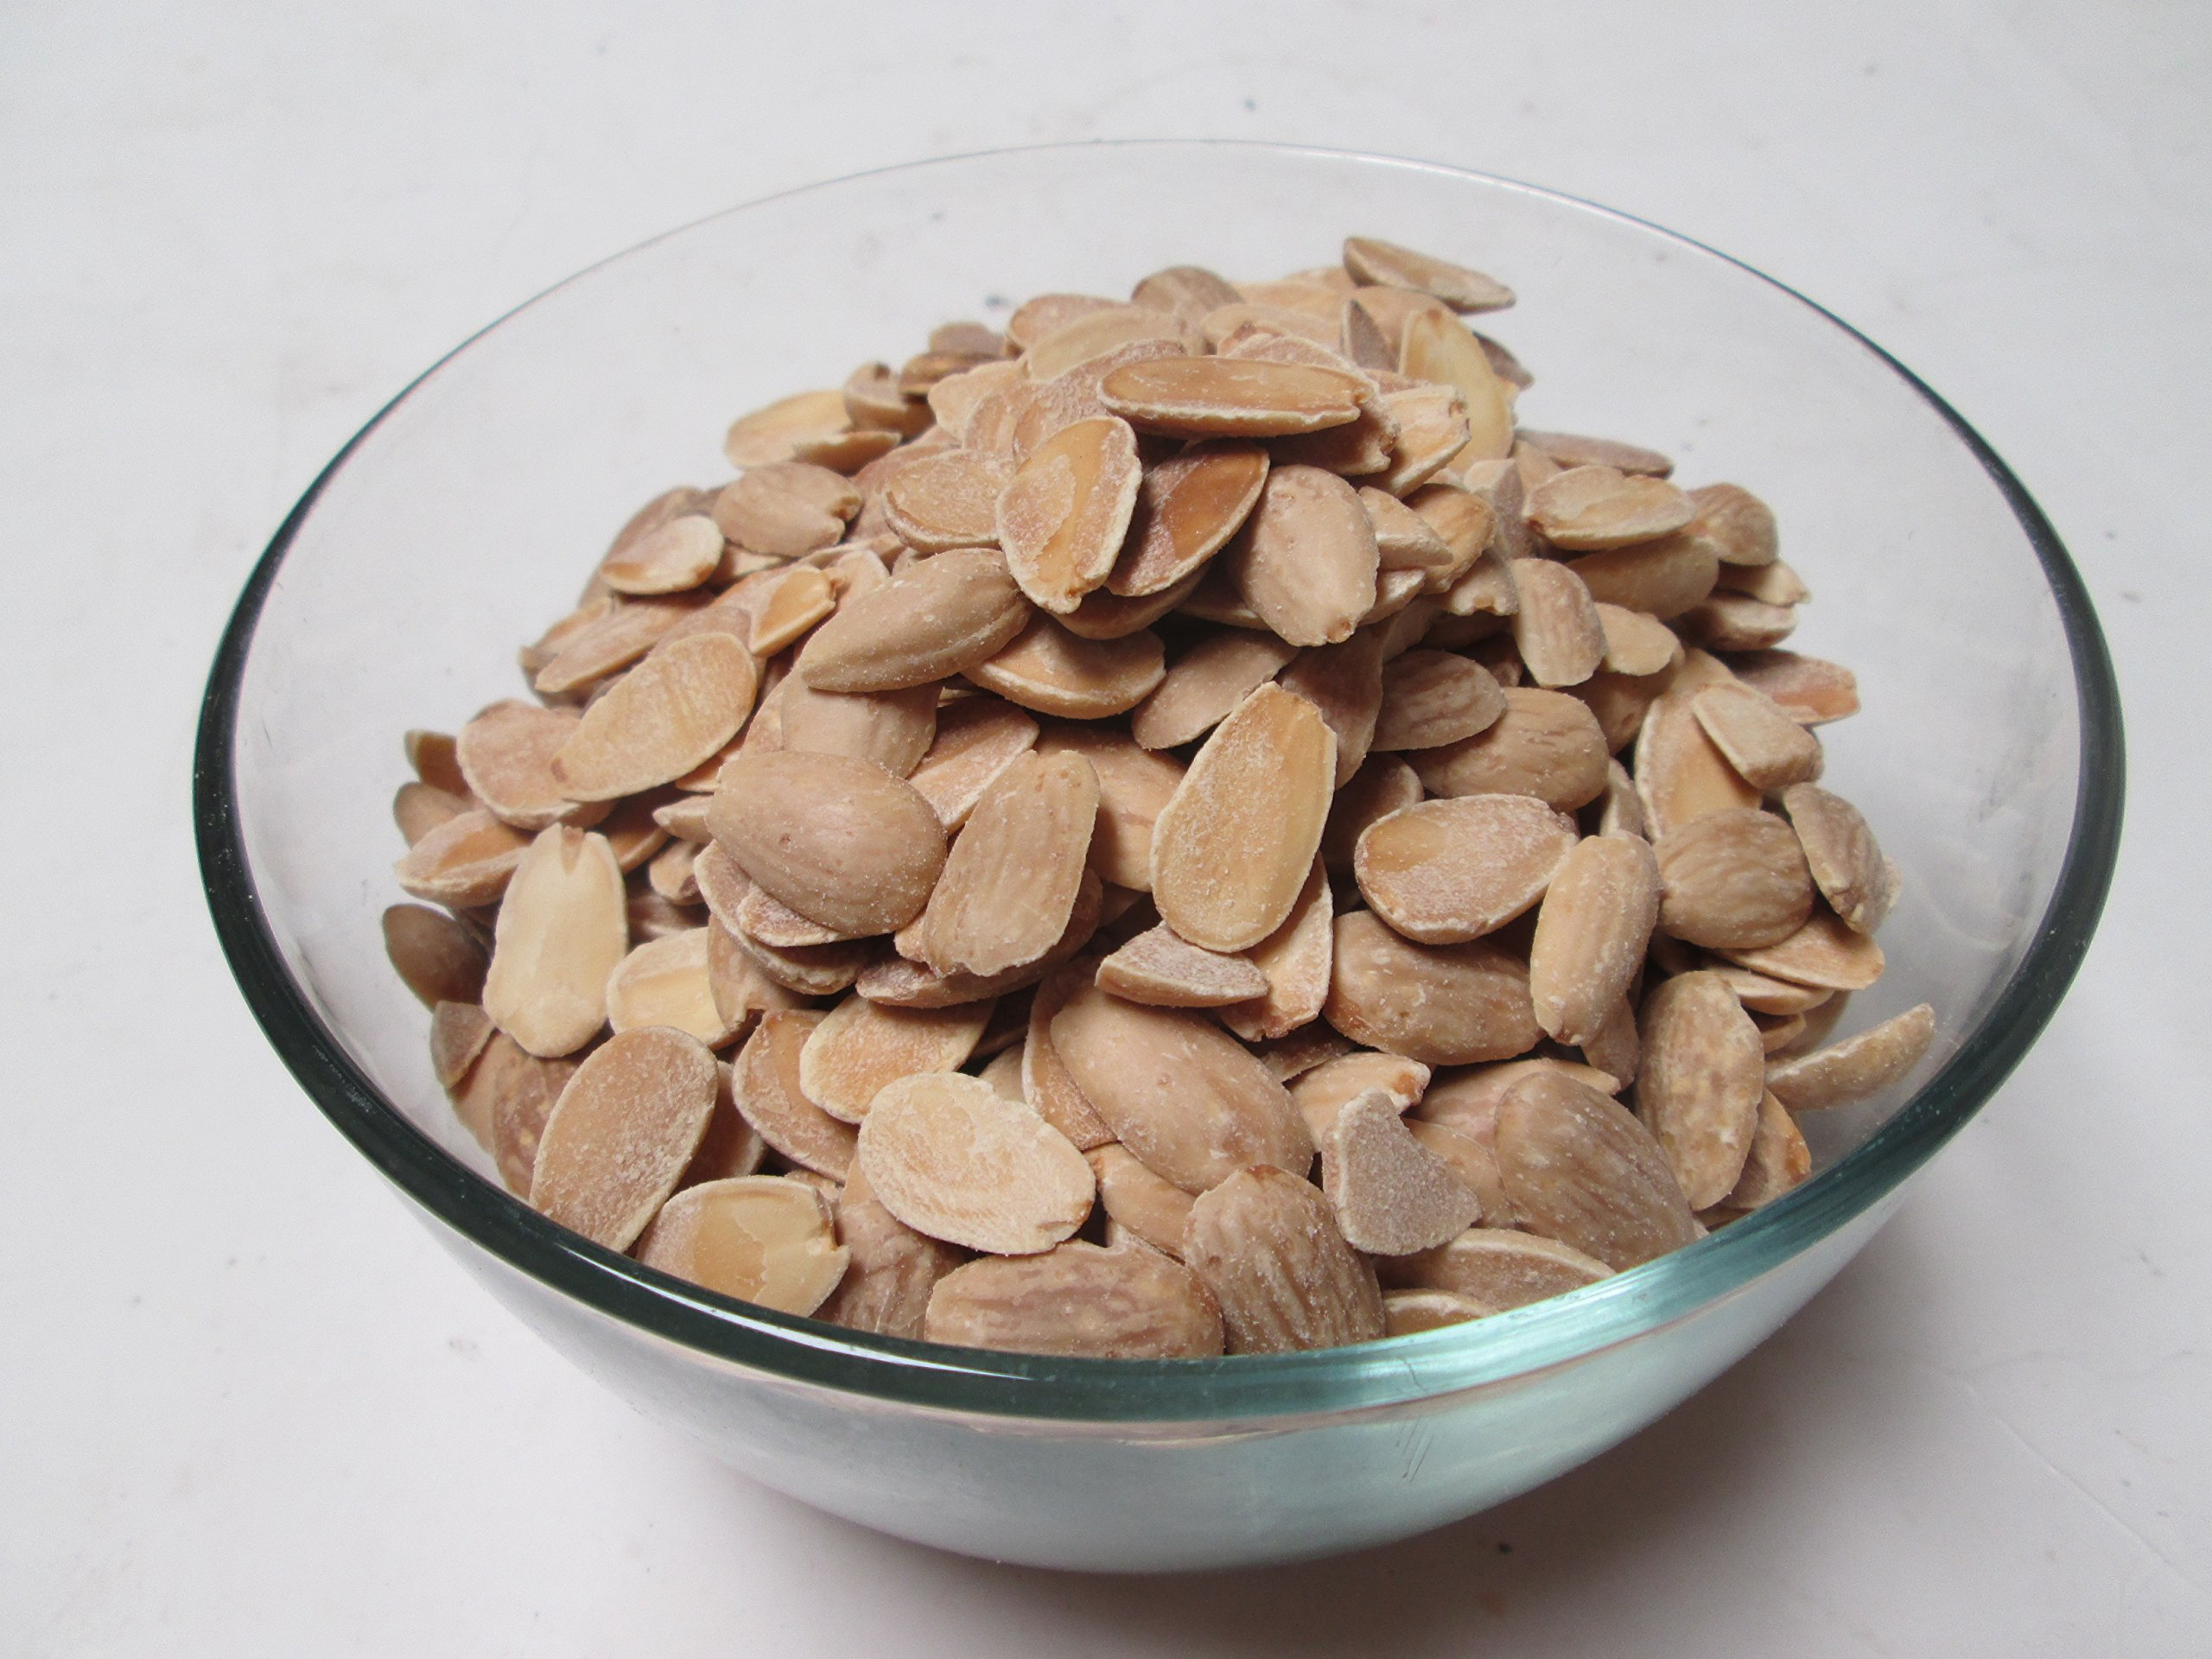 Candymax-Blanched Roasted Almonds 5 lb-5% off purchase of 3 any items, !